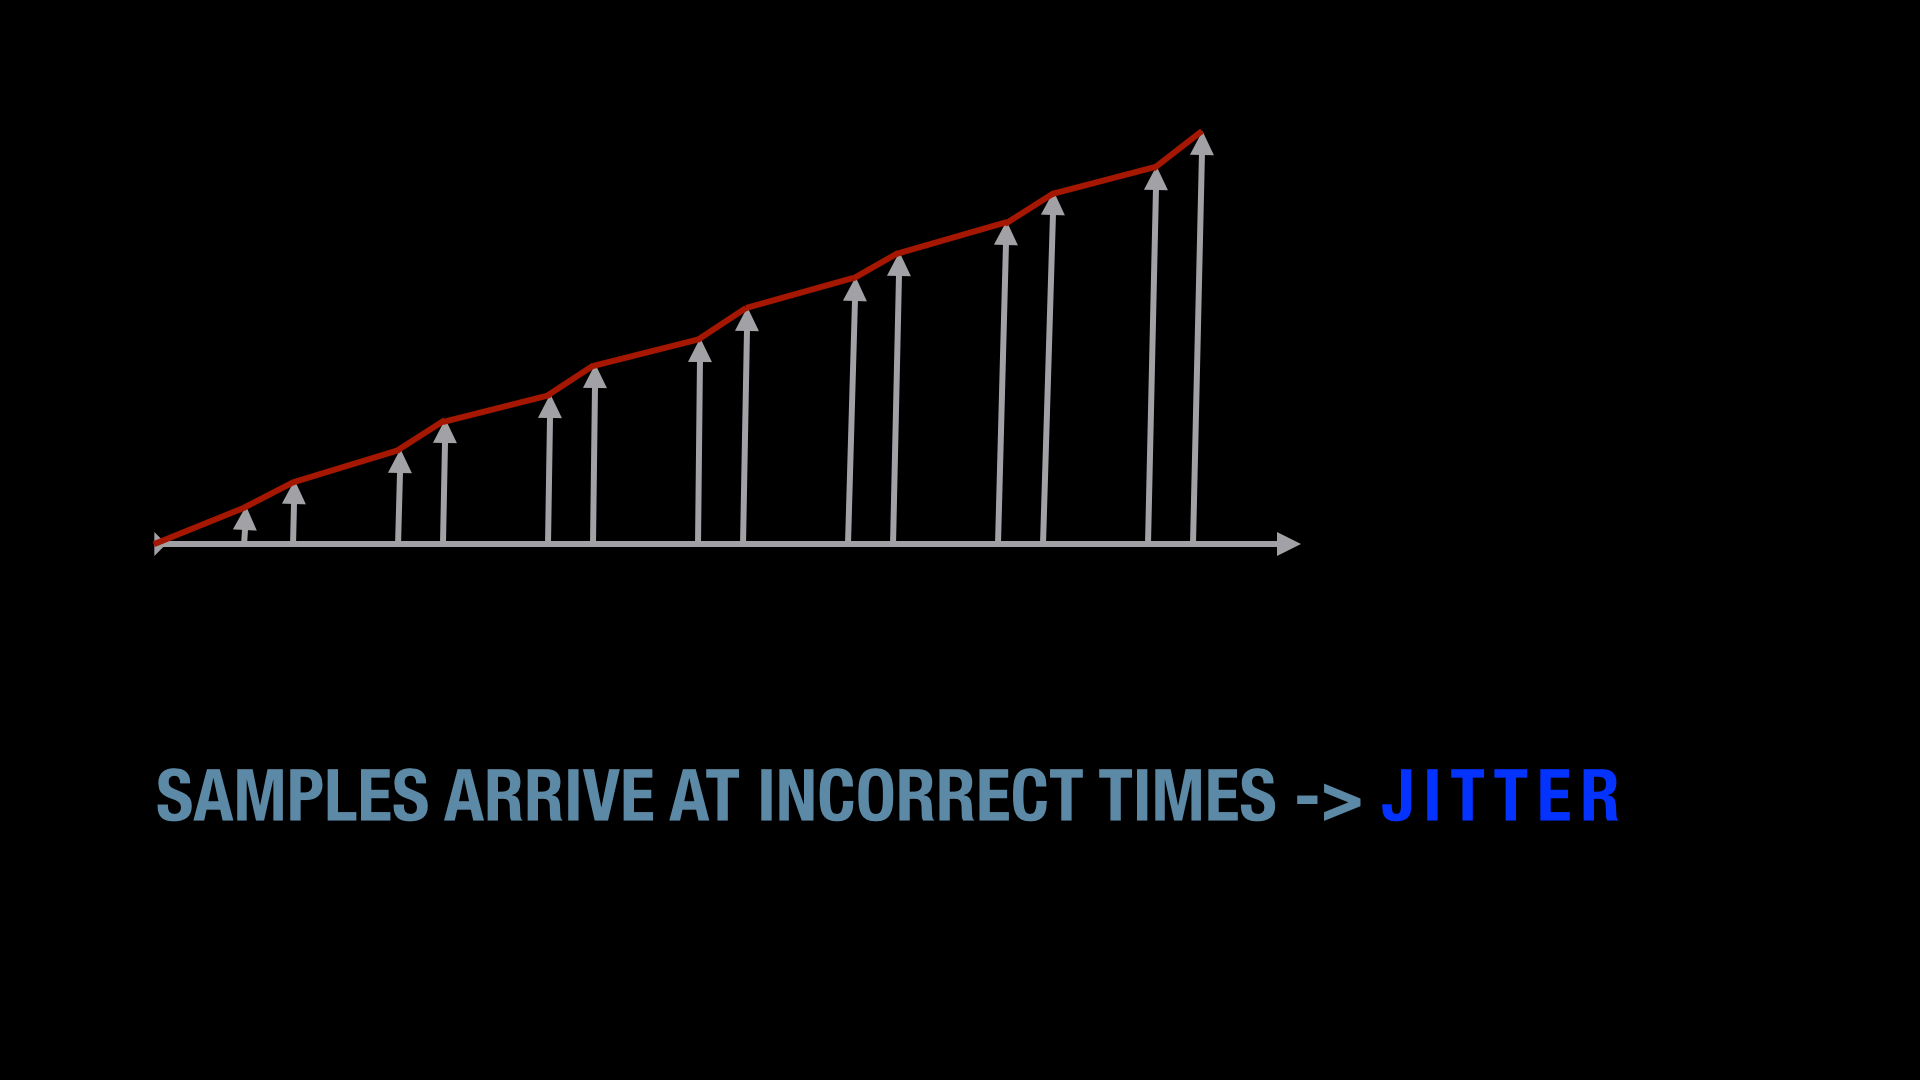 Timing inconsistencies cause jitter